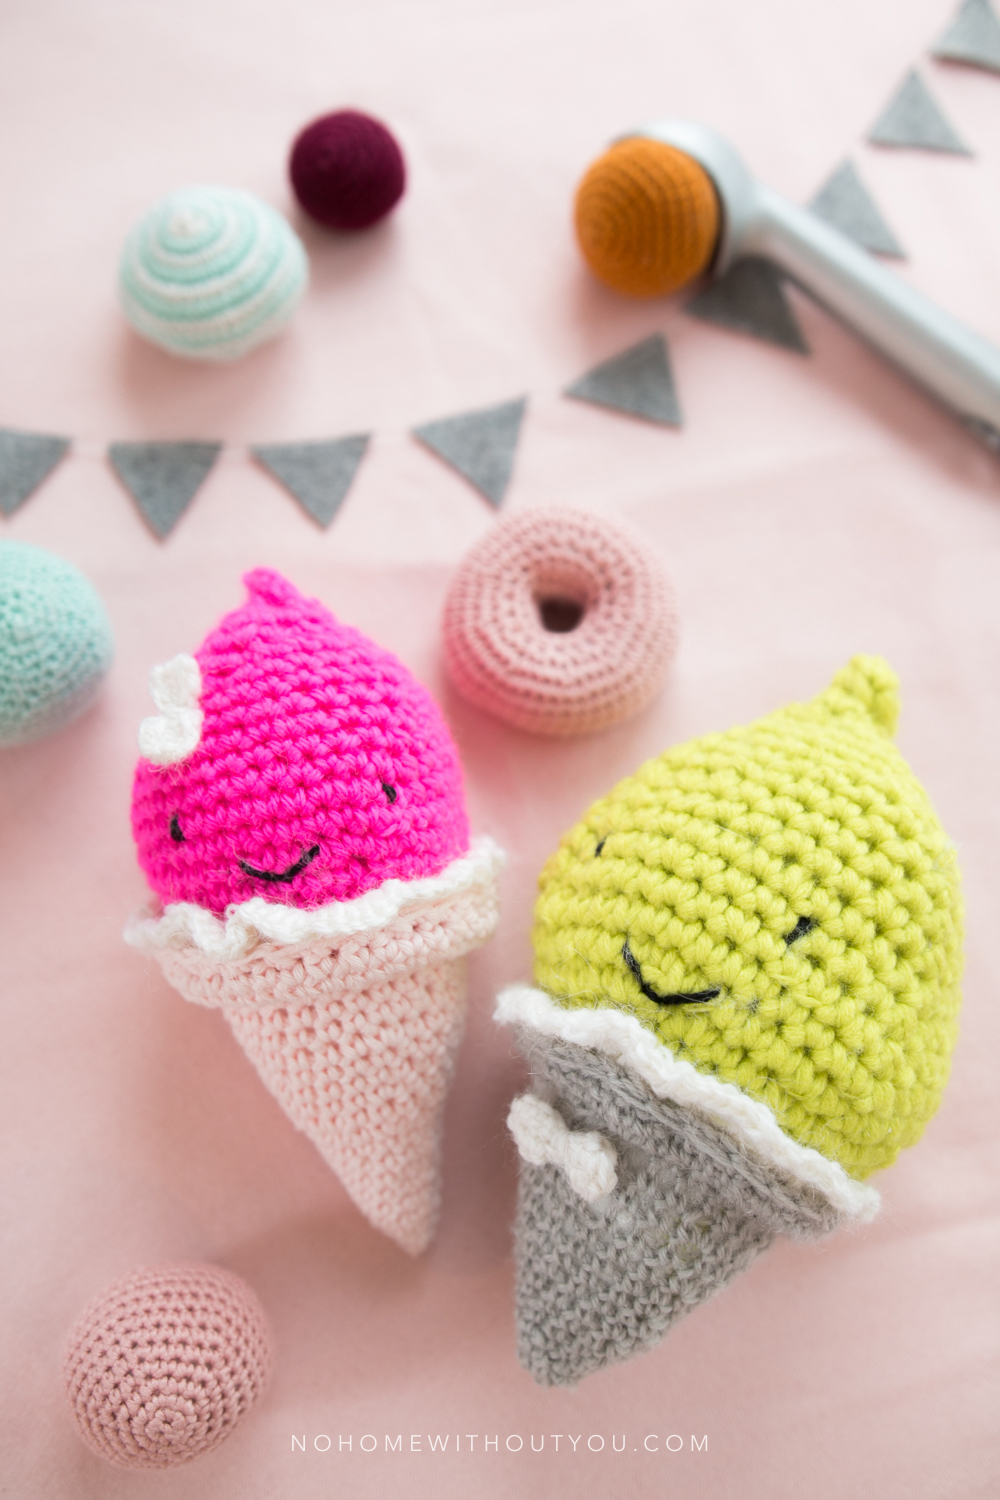 Ice-Cream-Party-Free-amigurumi-crochet-pattern-No-Home-Without-You-blog-2-of-10